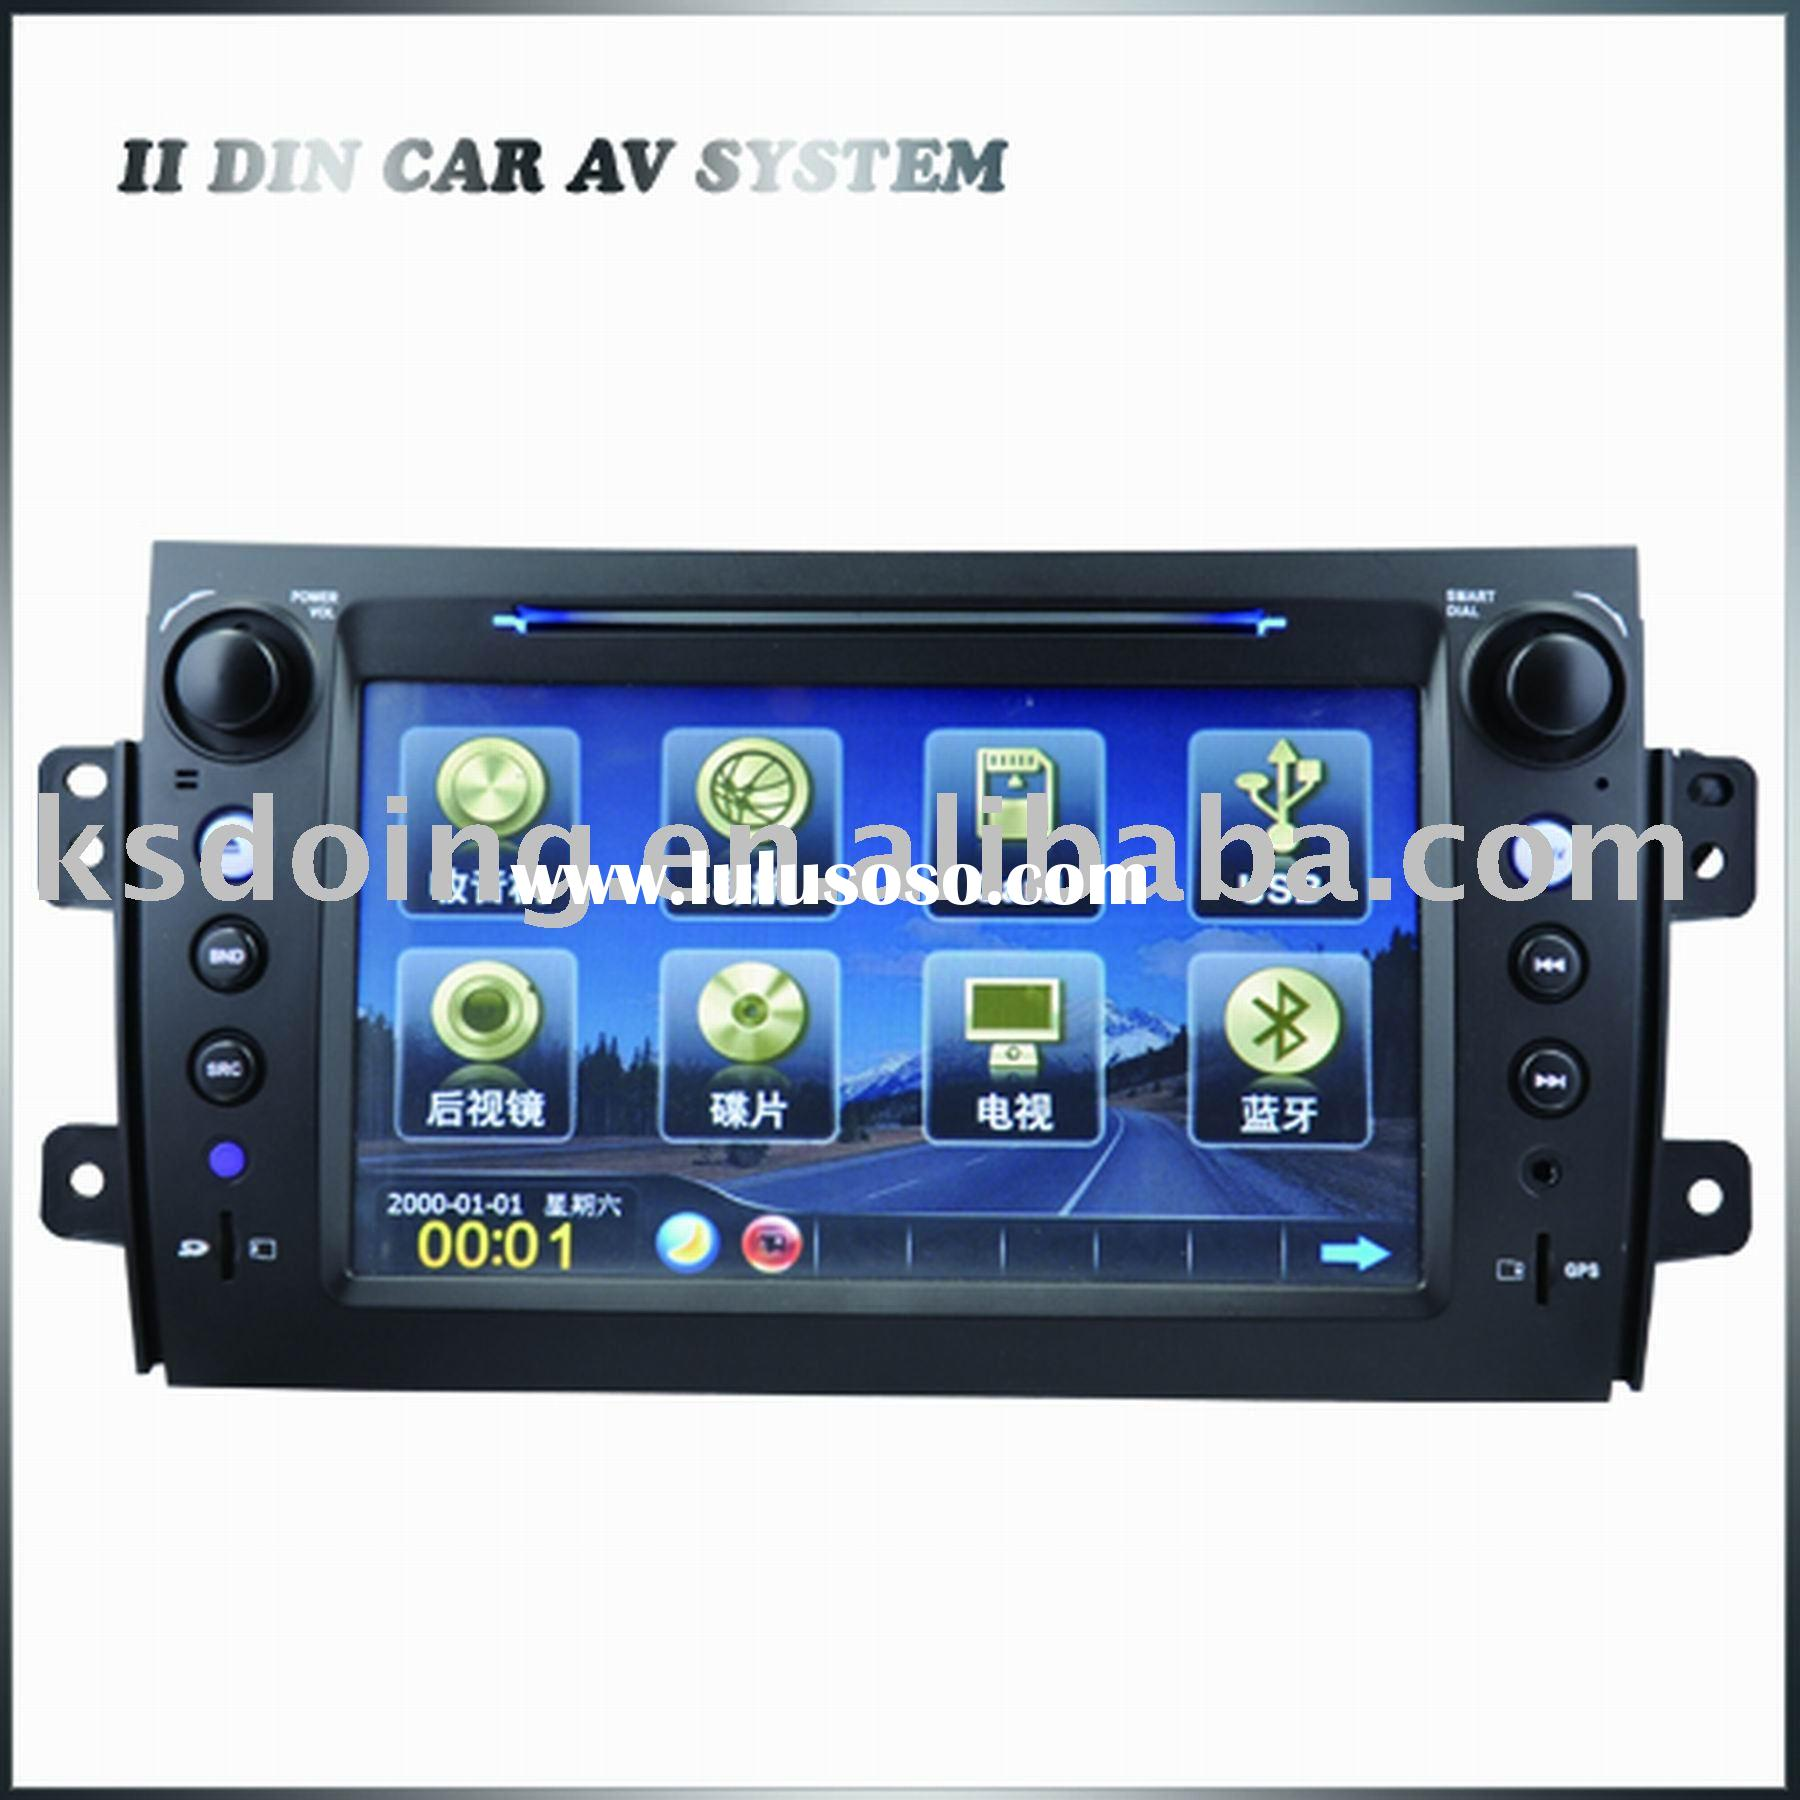 Dvd System For Car Dvd System For Car Manufacturers In Lulusoso Com Page 1